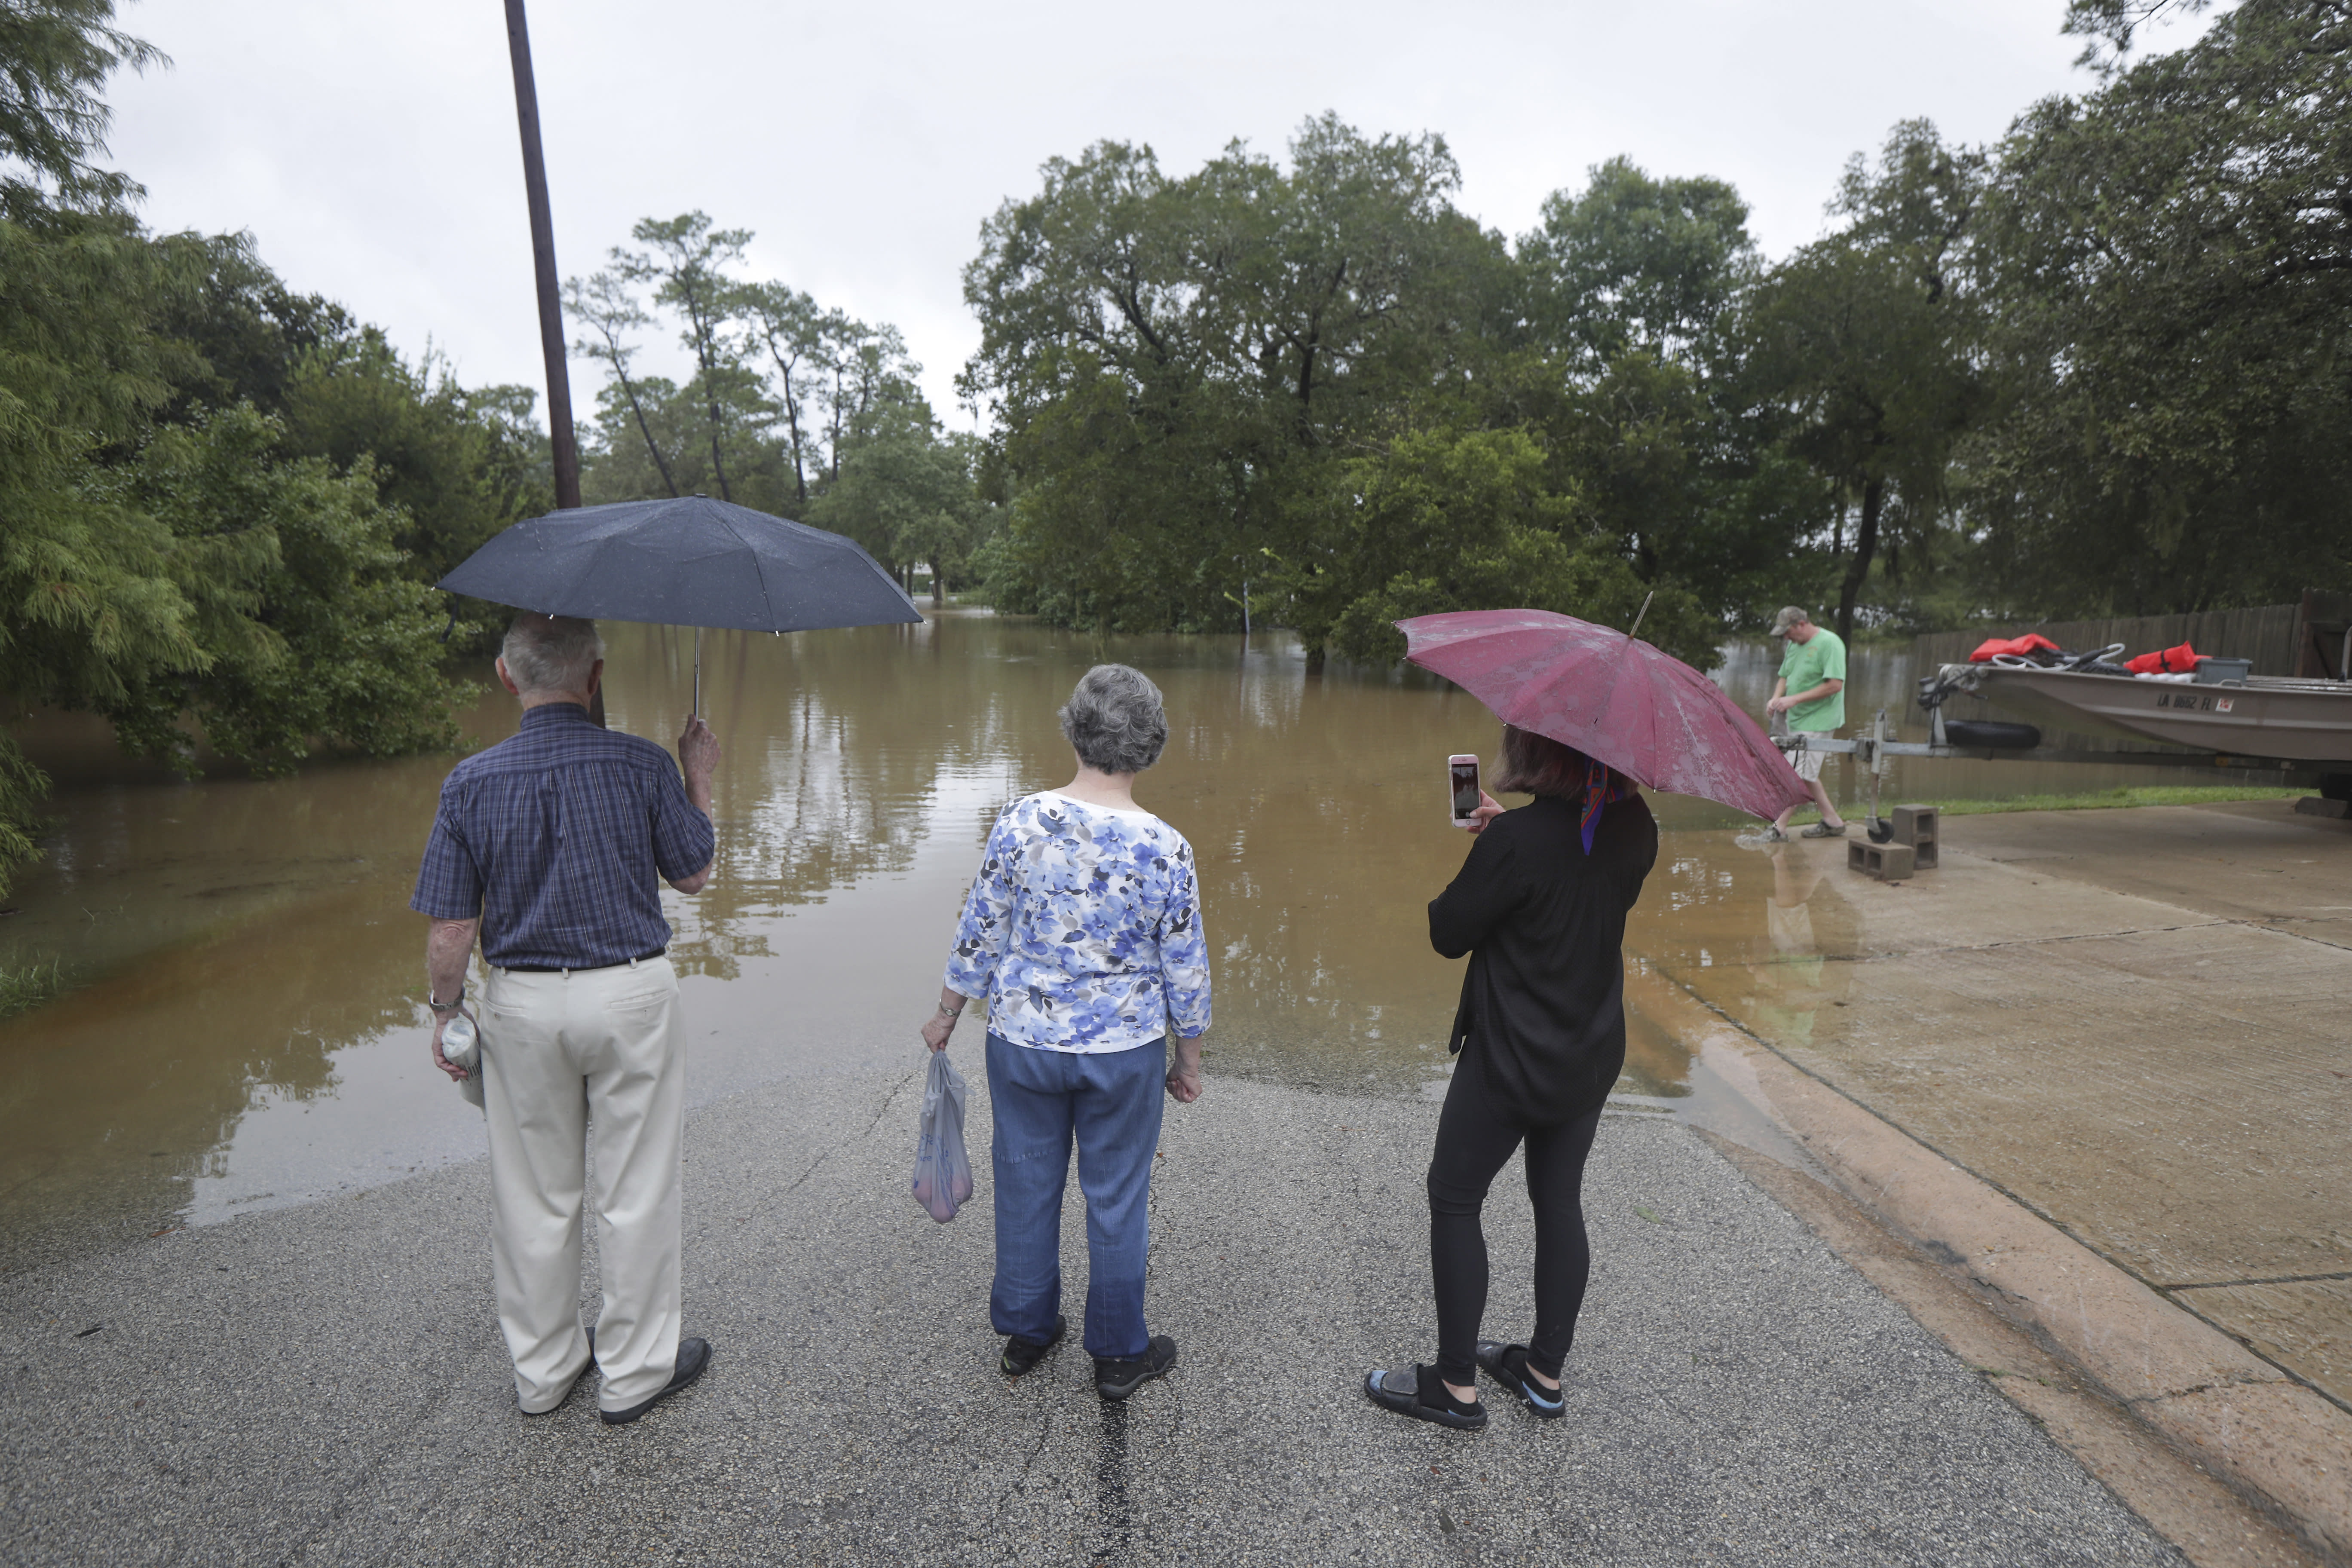 Local residents Harold and Carolyn Benson (l-r) along with Tara Richardson view the submerged Mary Xing bridge over Marys Creek that leads into Clear Creek as Tropical Storm Beta rainfall trained over the area Tuesday, Sept. 22, 2020, in Friendswood, Texas (Steve Gonzales/Houston Chronicle via AP)